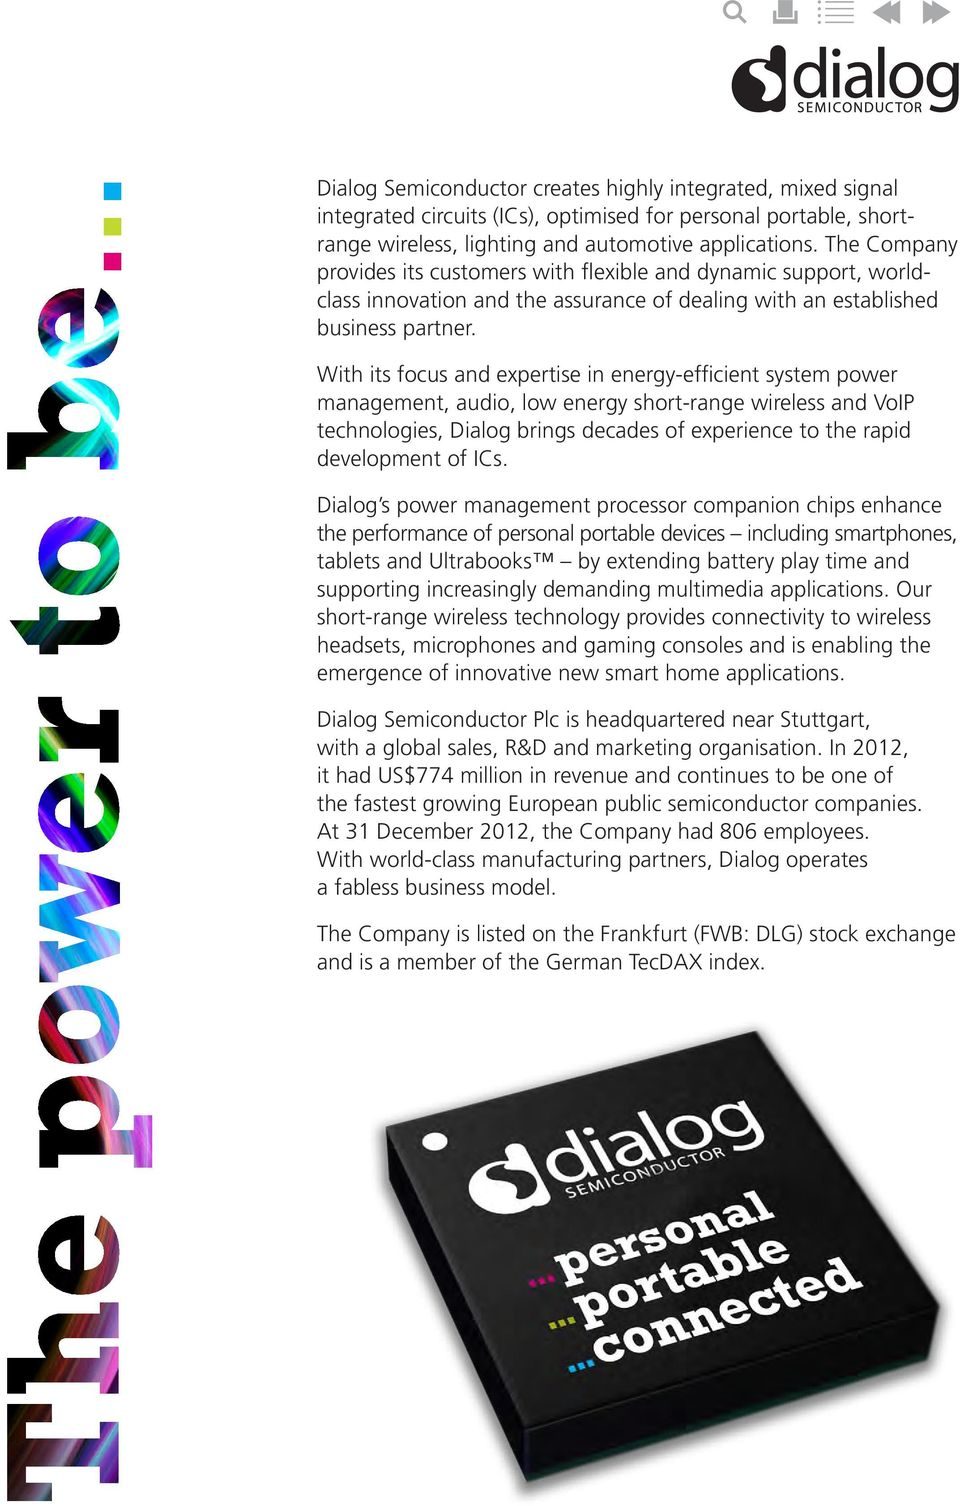 With its focus and expertise in energy-efficient system power management, audio, low energy short-range wireless and VoIP technologies, Dialog brings decades of experience to the rapid development of